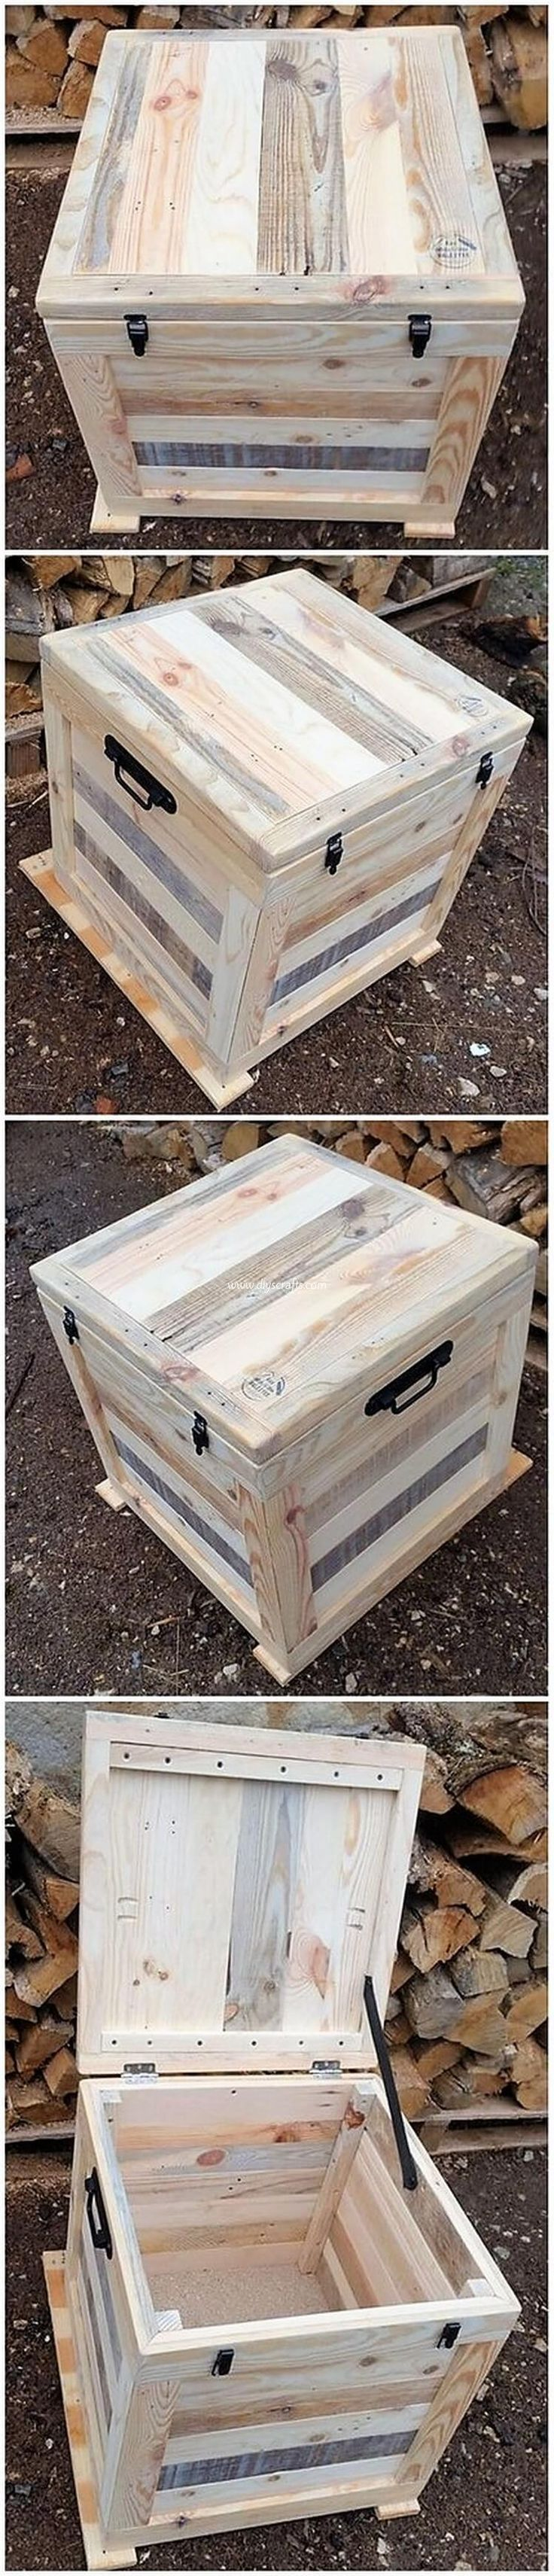 Deco Malle En Bois 25 cool projects to try with recycled pallets | malle en